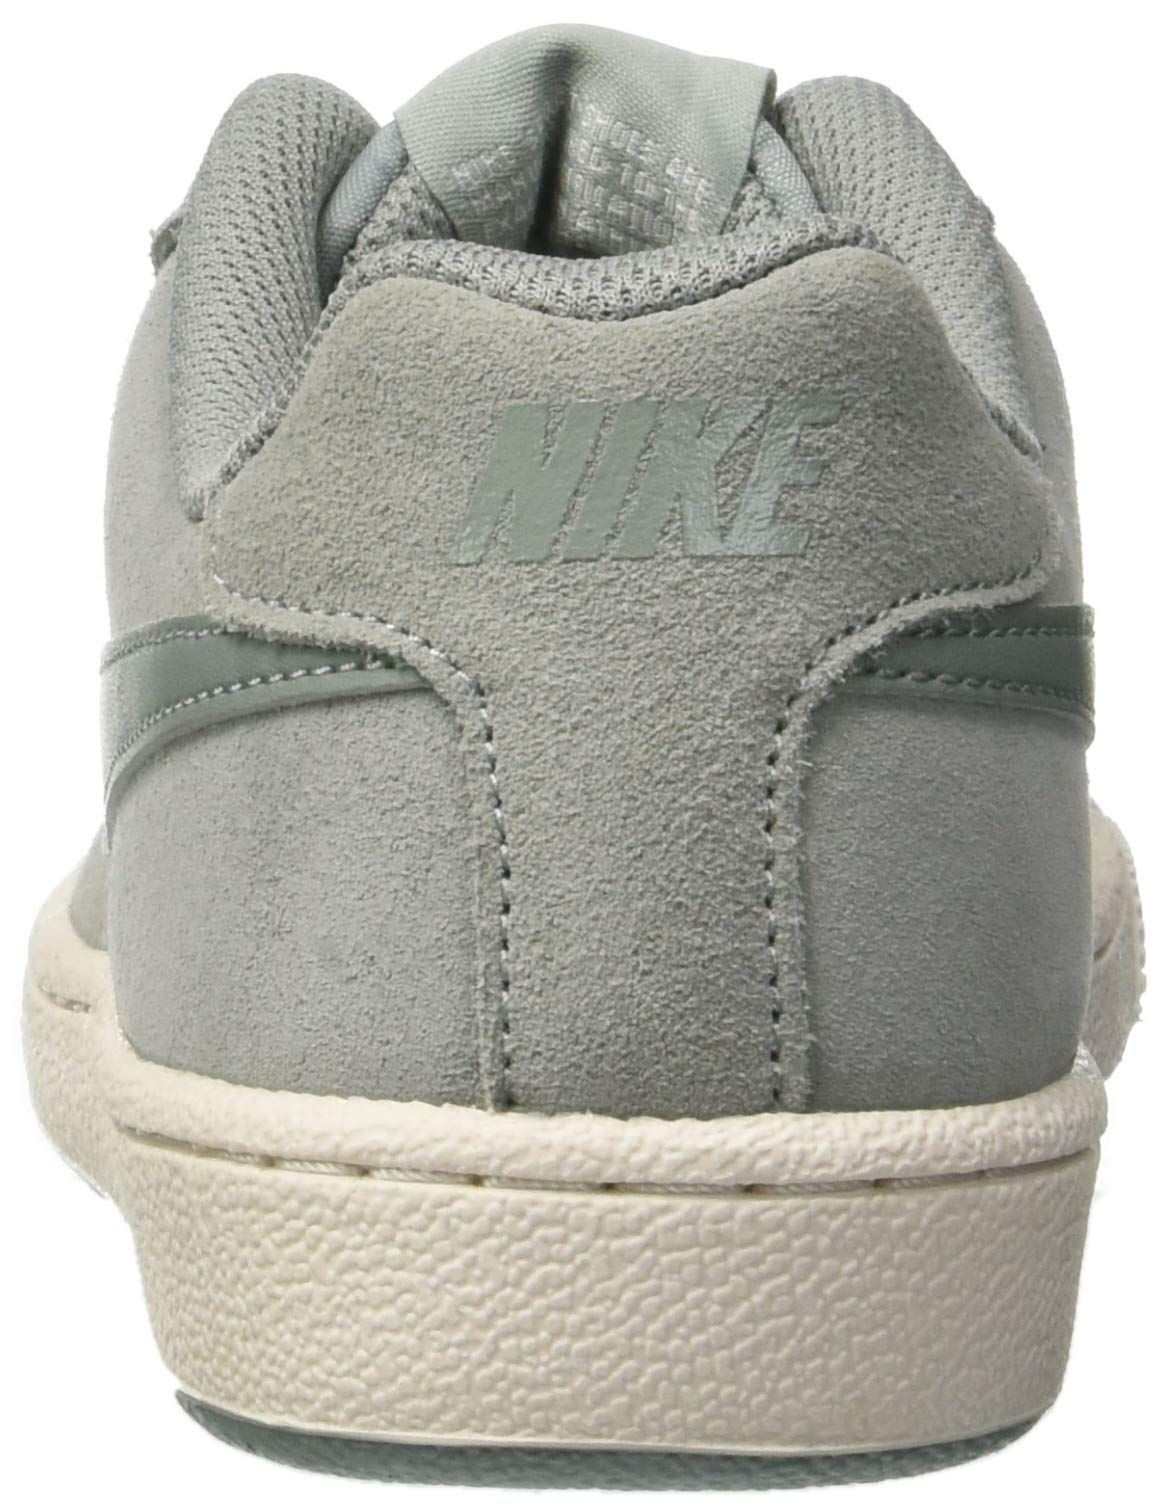 Nike Court Royale Suede Mica Green/Mica